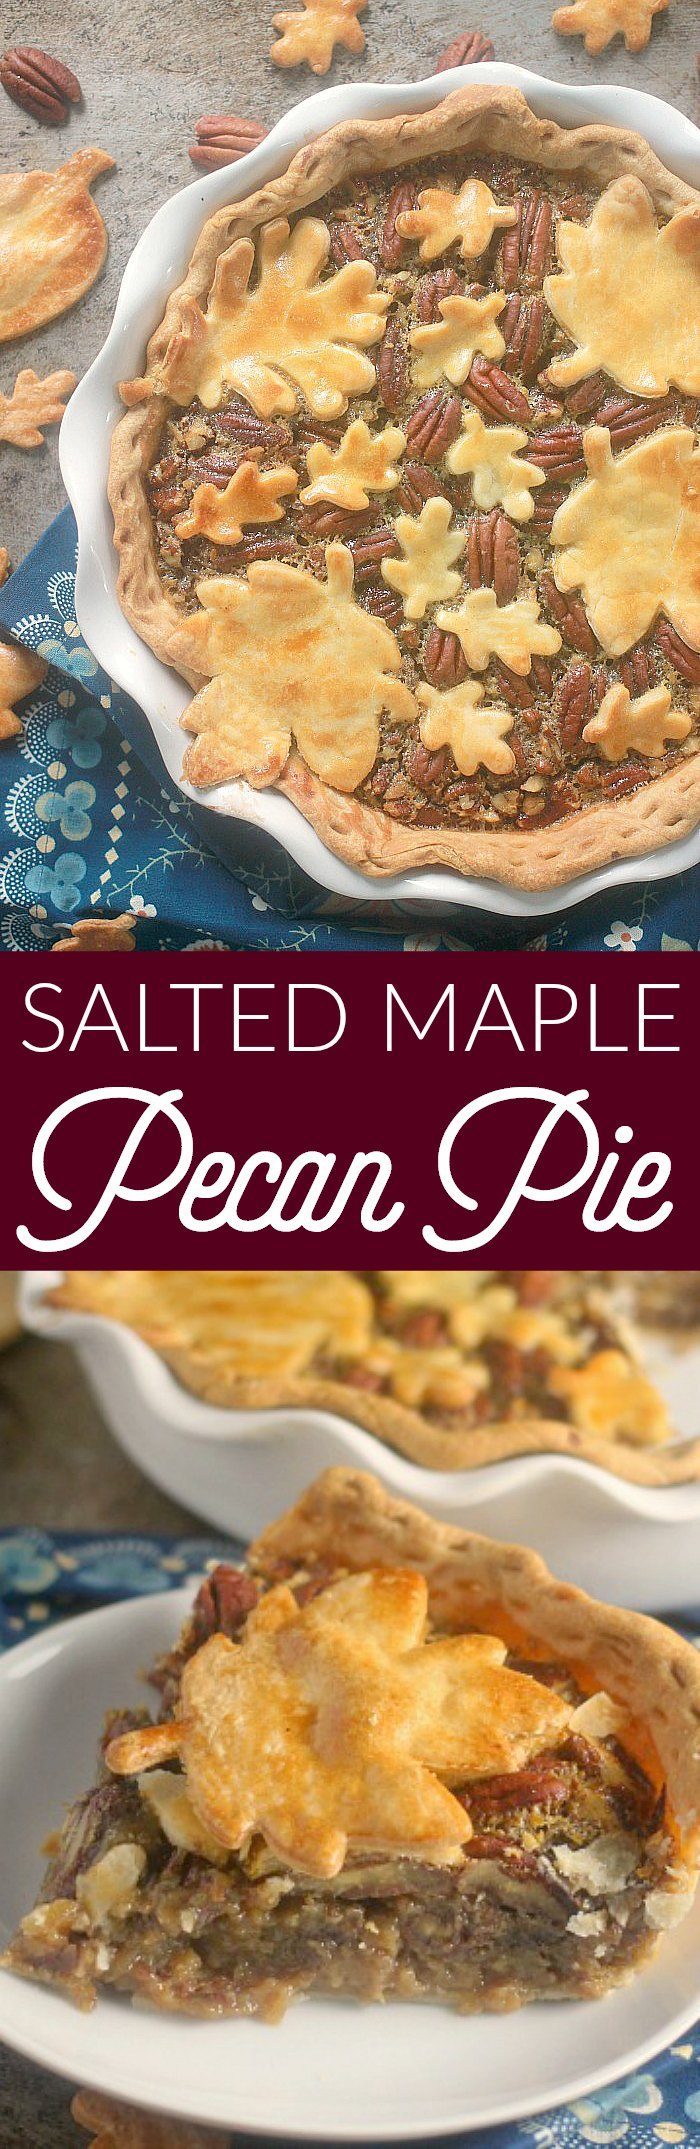 Maple Syrup, bourbon, and toasted pecans create an incredible depth of flavor in this Salted Maple Pecan Pie. You won't get any complaints that the pecan pie is too sweet with this version!